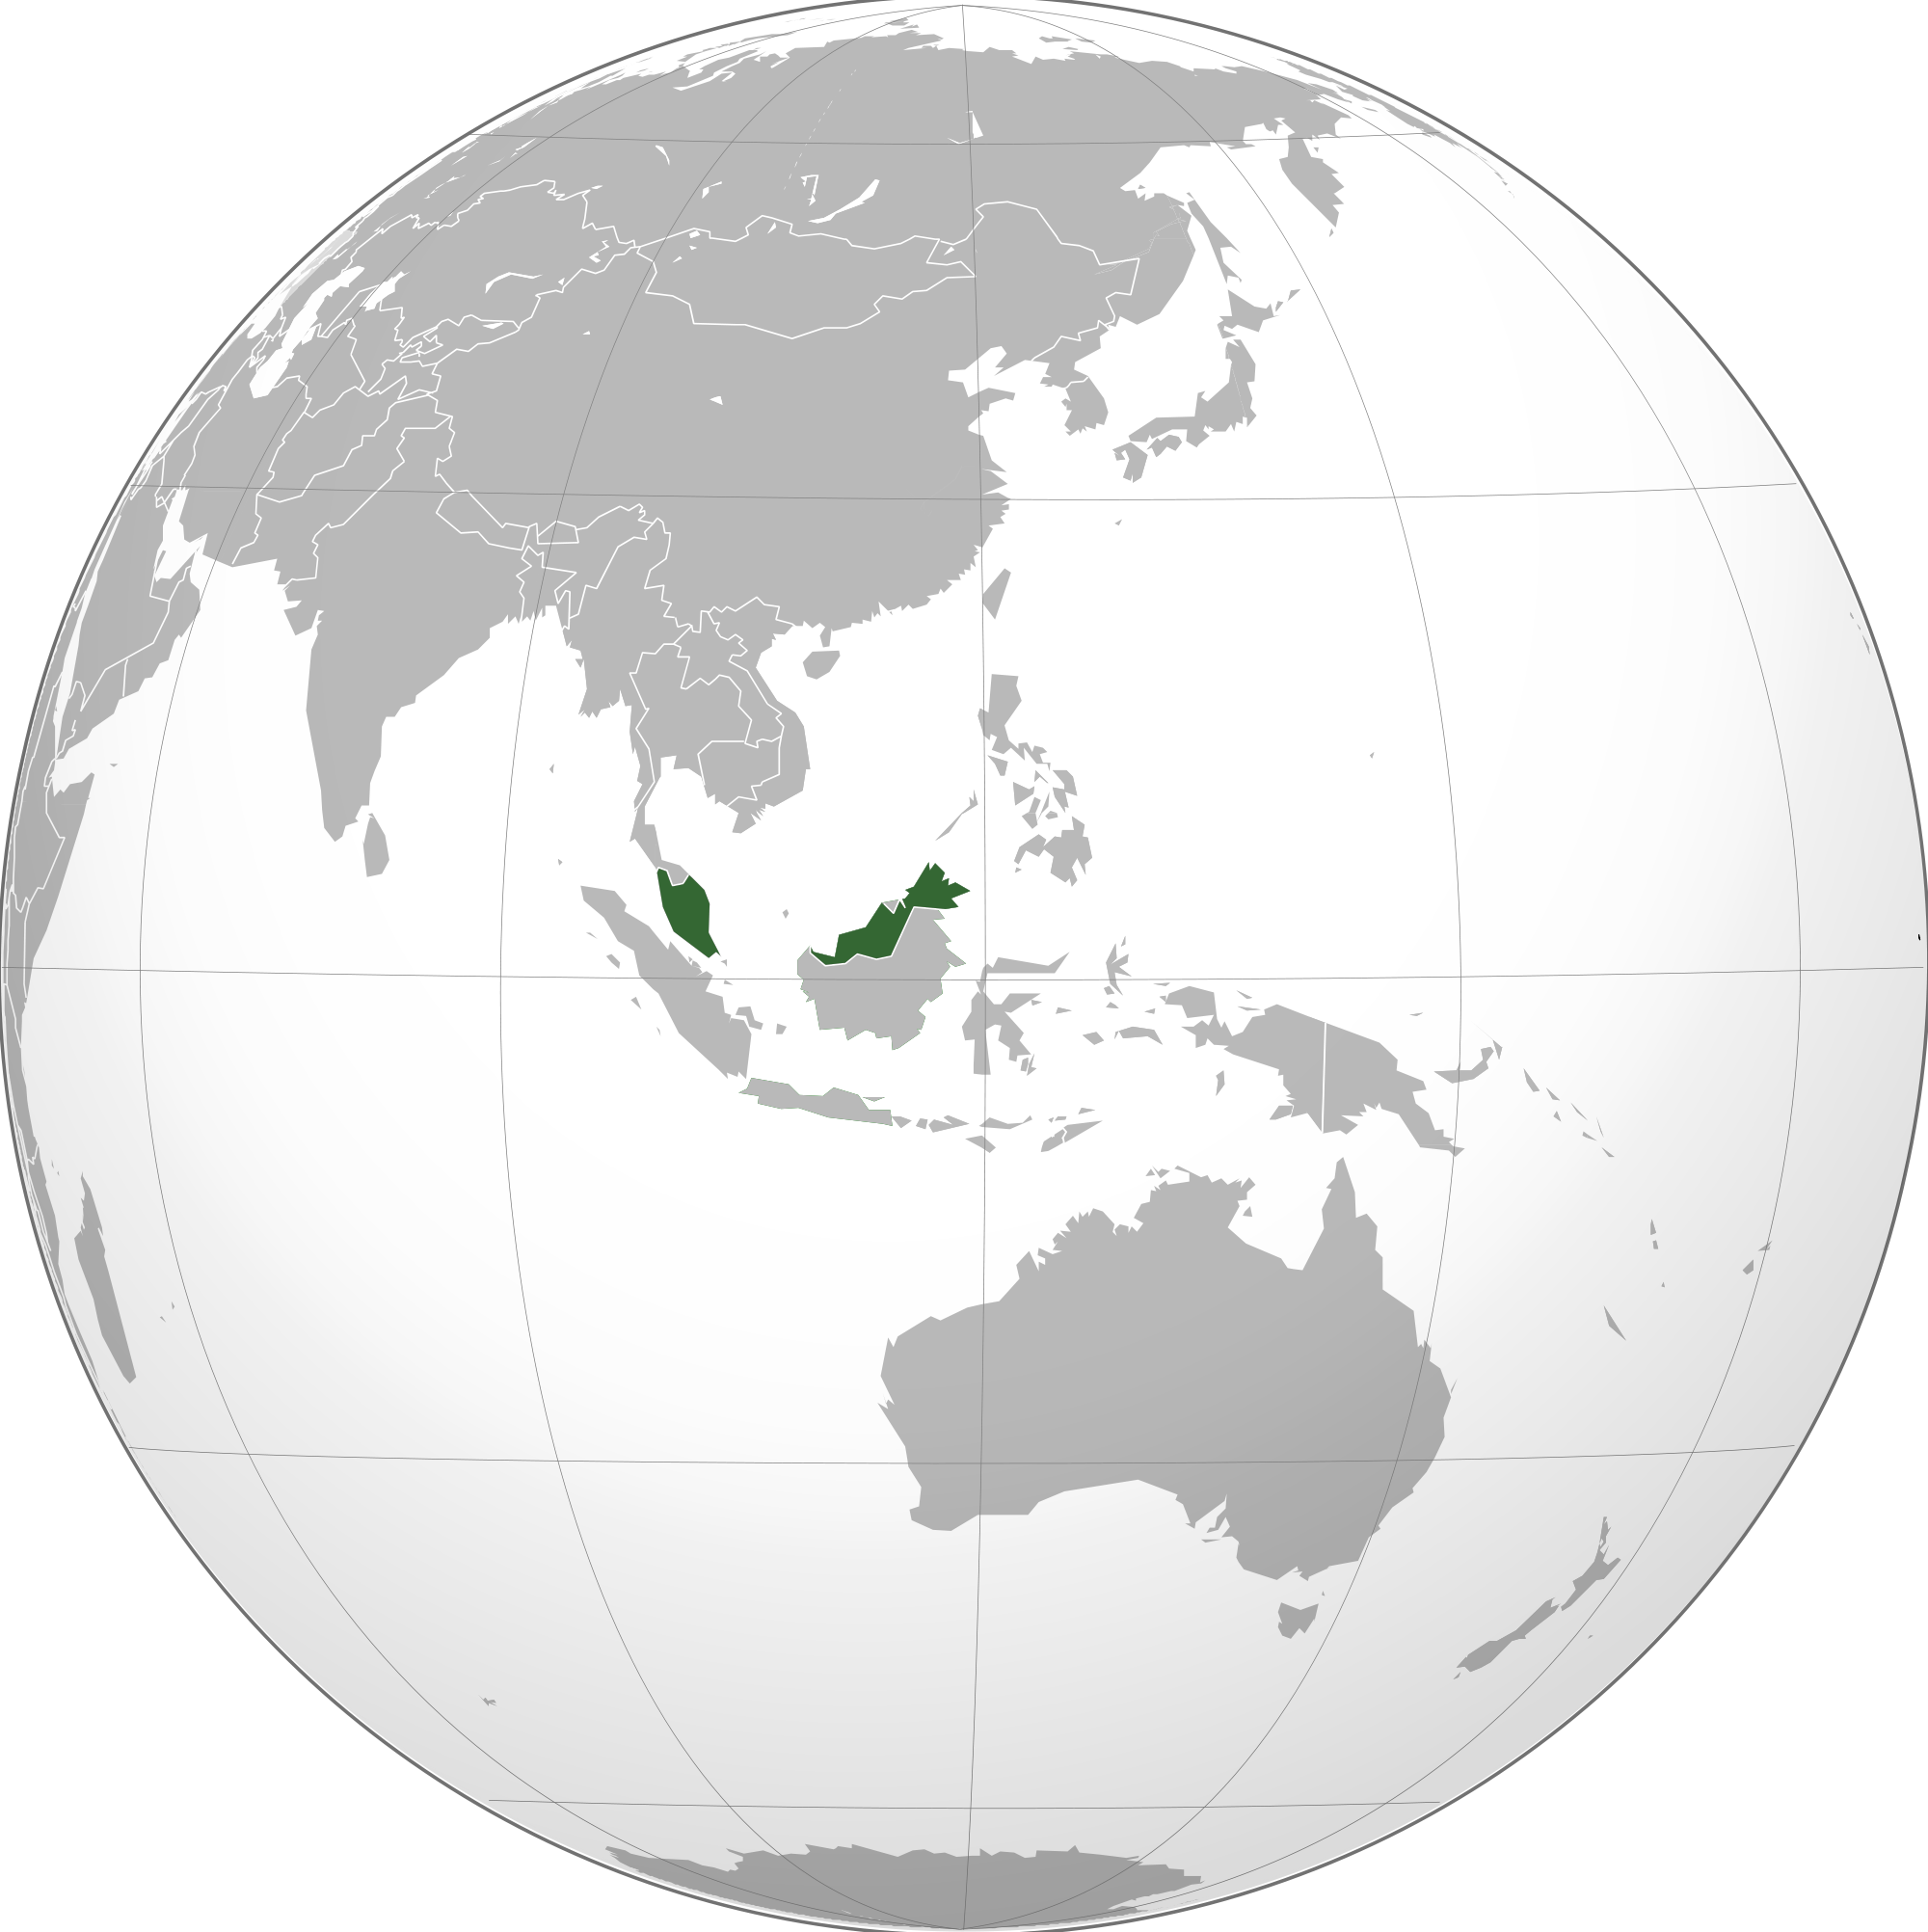 Malaysia On The World Map.Location Of The Malaysia In The World Map